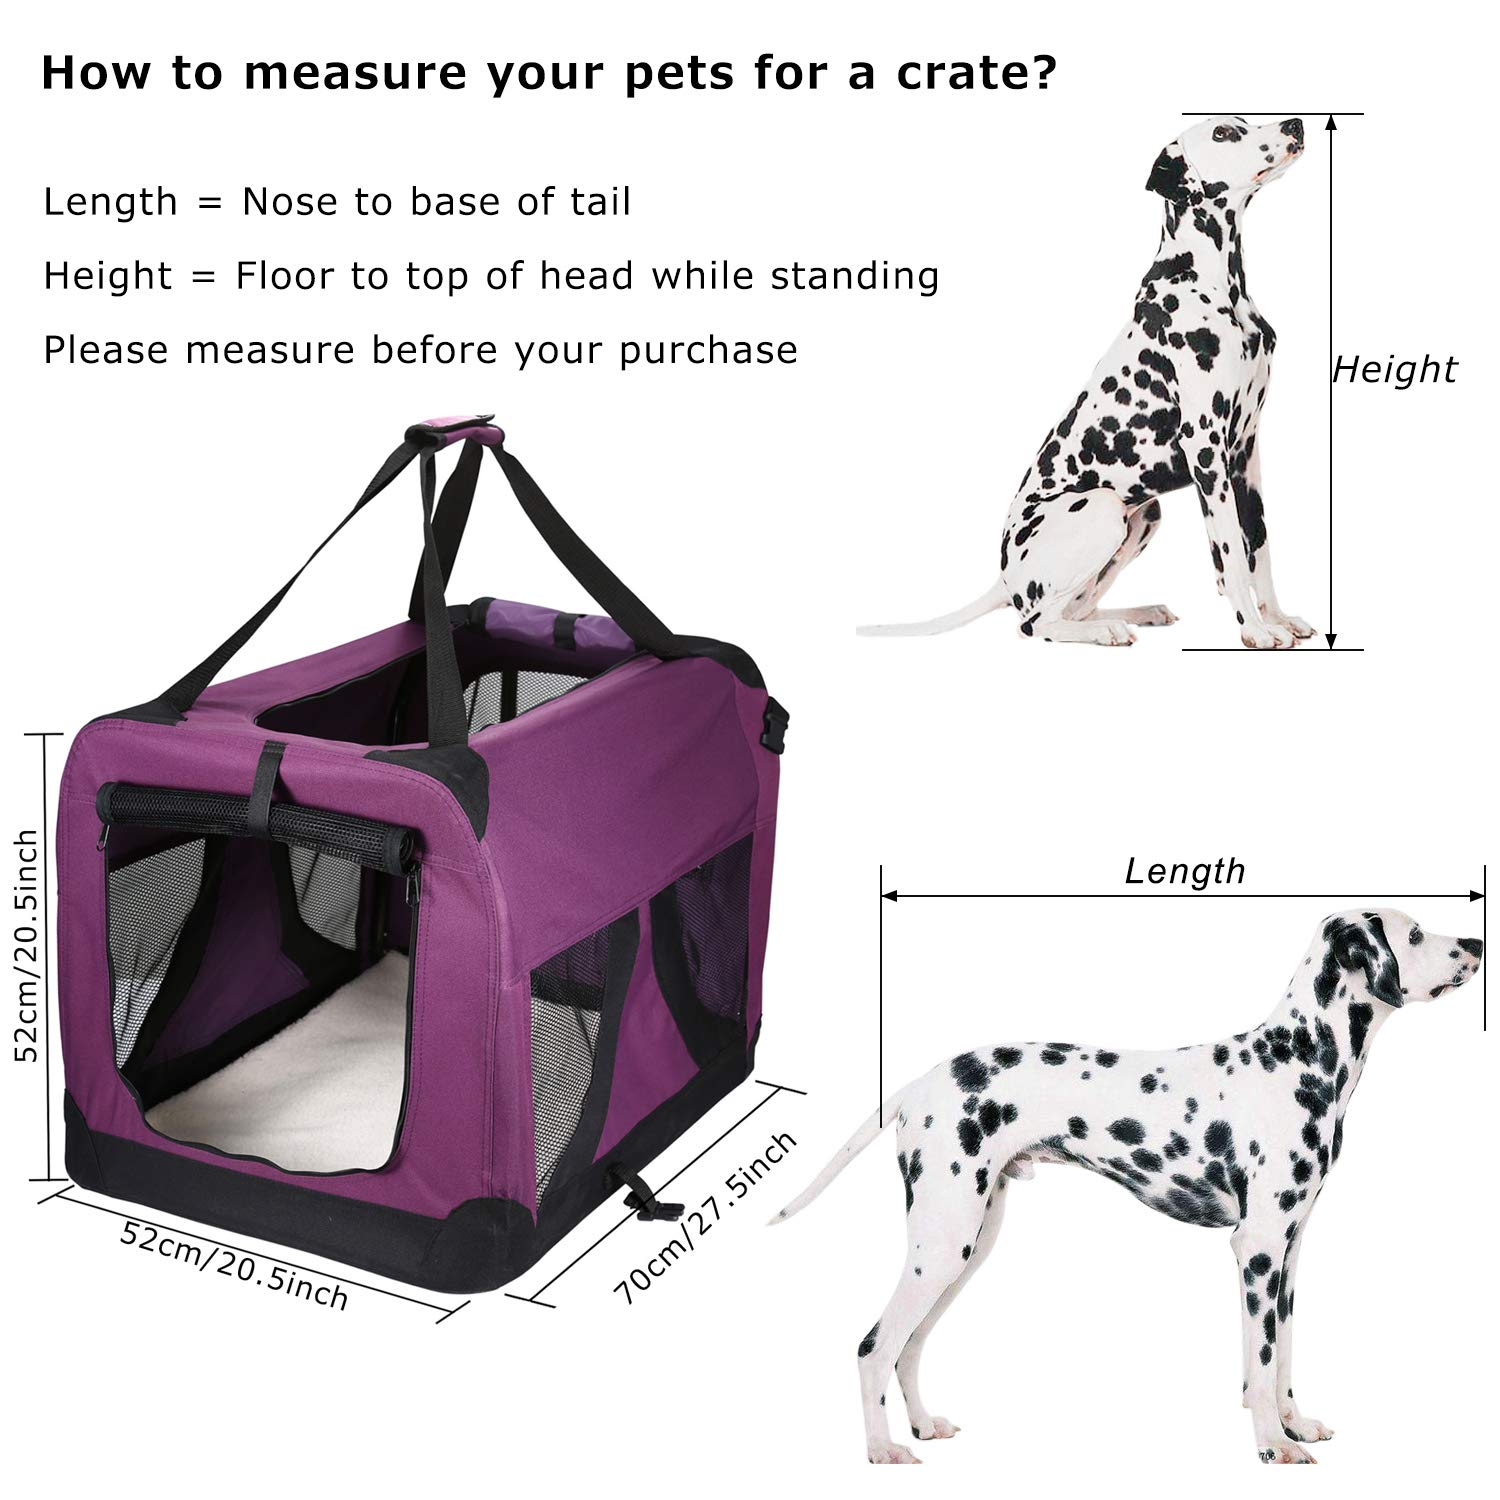 Pettom Dog Crate Soft Sided Kennel 27 x 20 x 20in for Pet Indoor Home Outdoor Use 2 Door Folding Collapsible Travel Carrier Padded Fleece Bedding for Medium Large Dogs